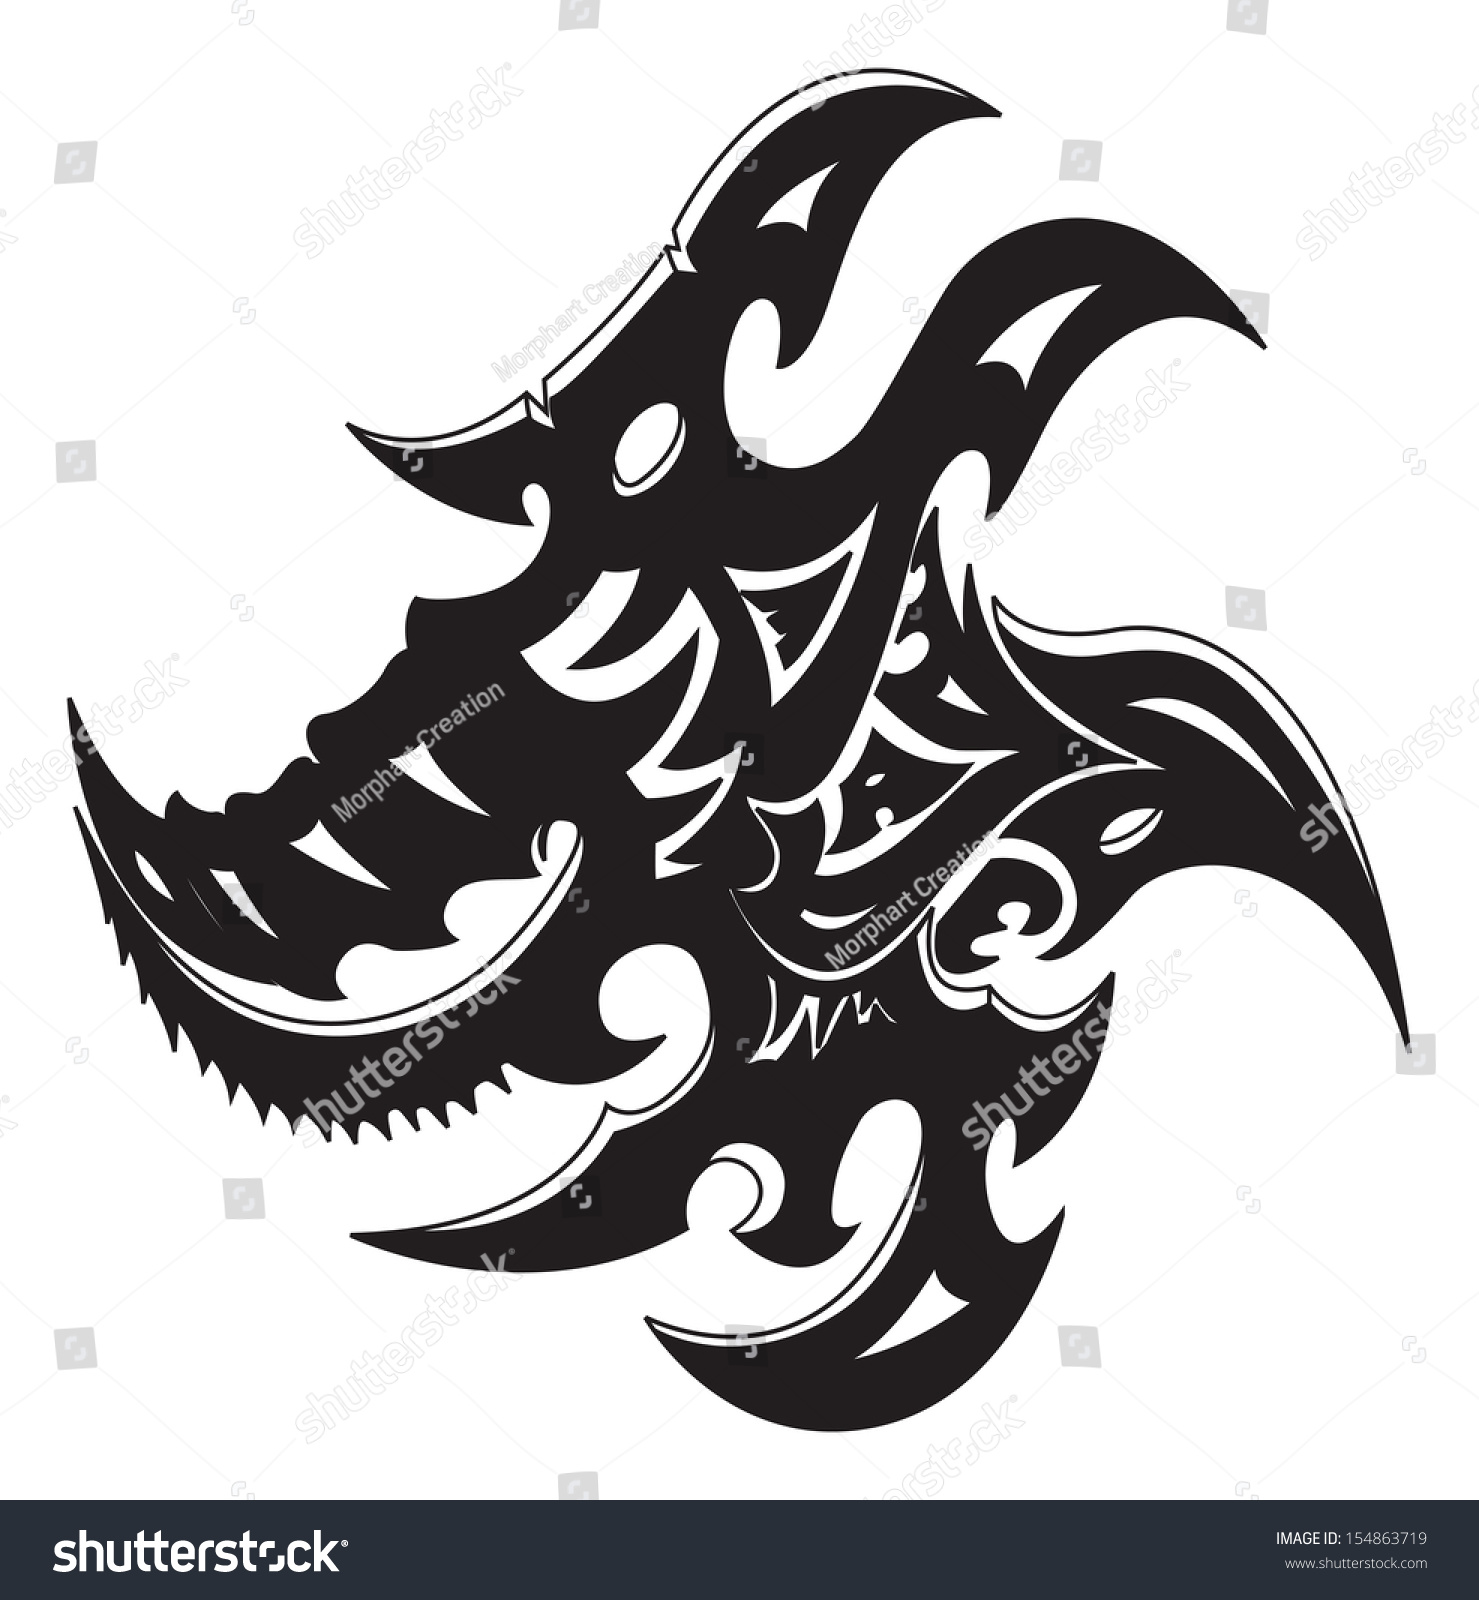 Dragon vector sign stock vector 313643336 shutterstock - Dragon Vector Sign Stock Vector 313643336 Shutterstock Vectors Illustrations Footage Music Abstract Tribal Tattoo Design